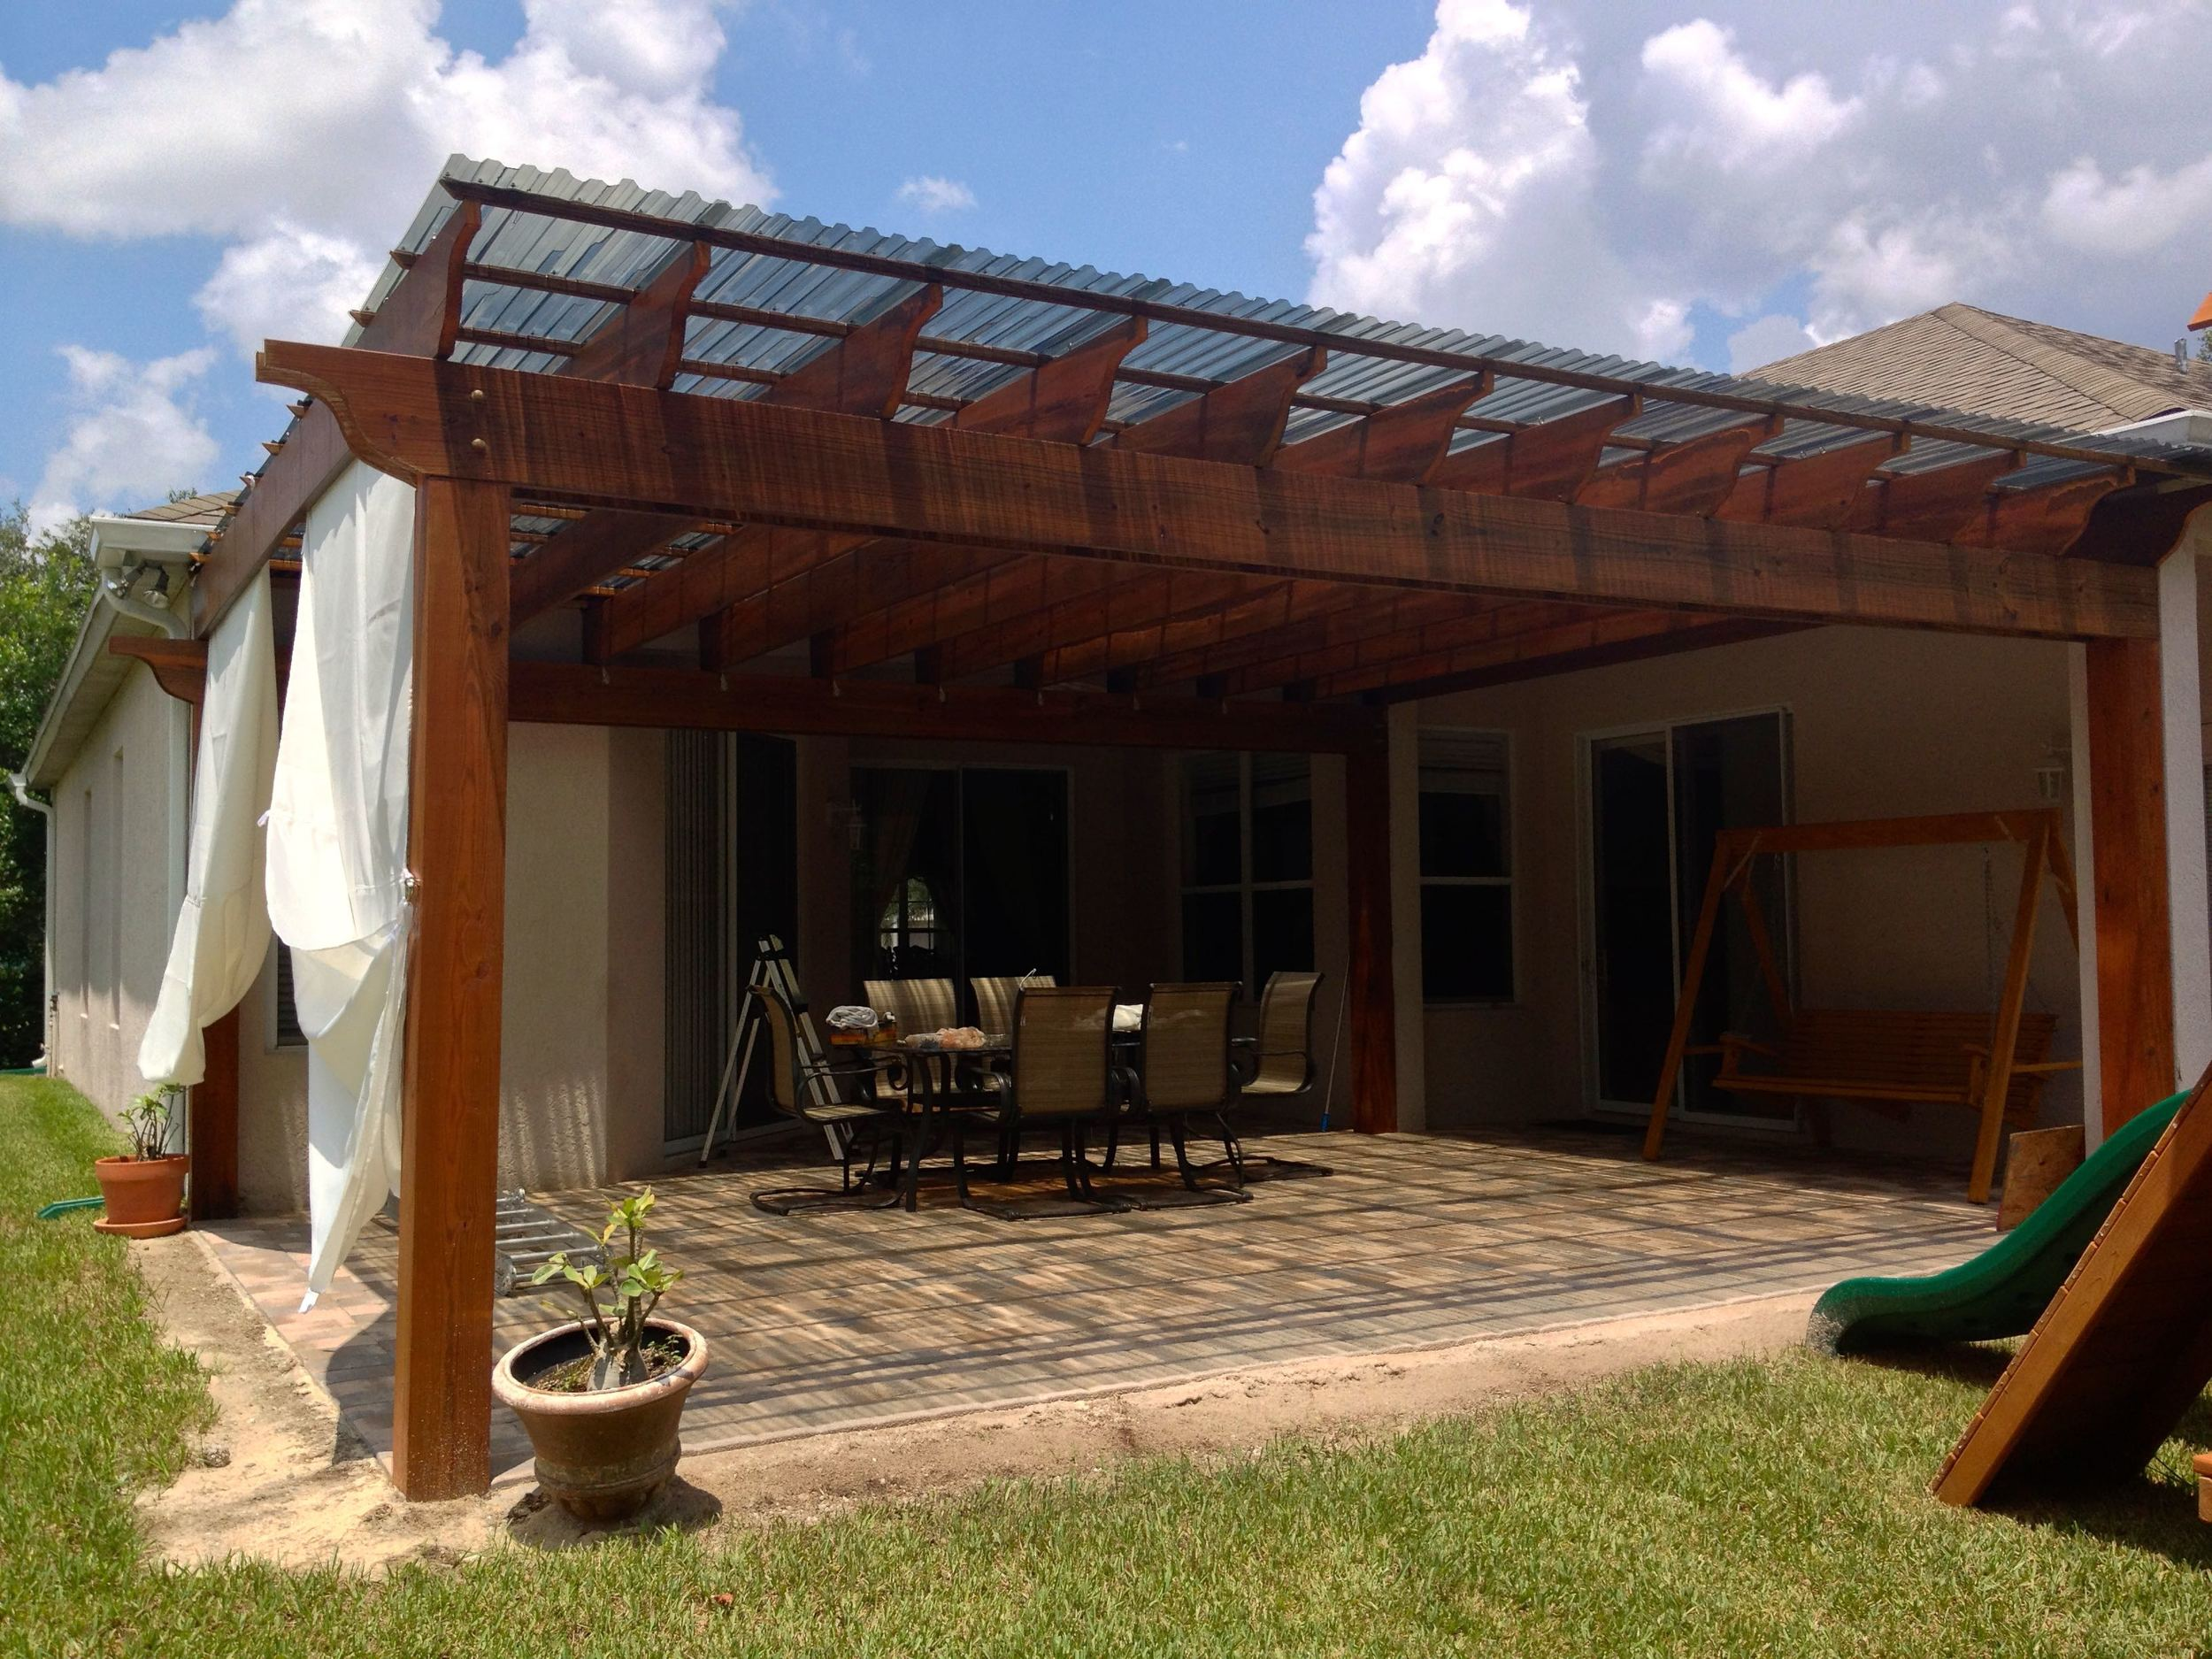 Pergola with See-through Covering